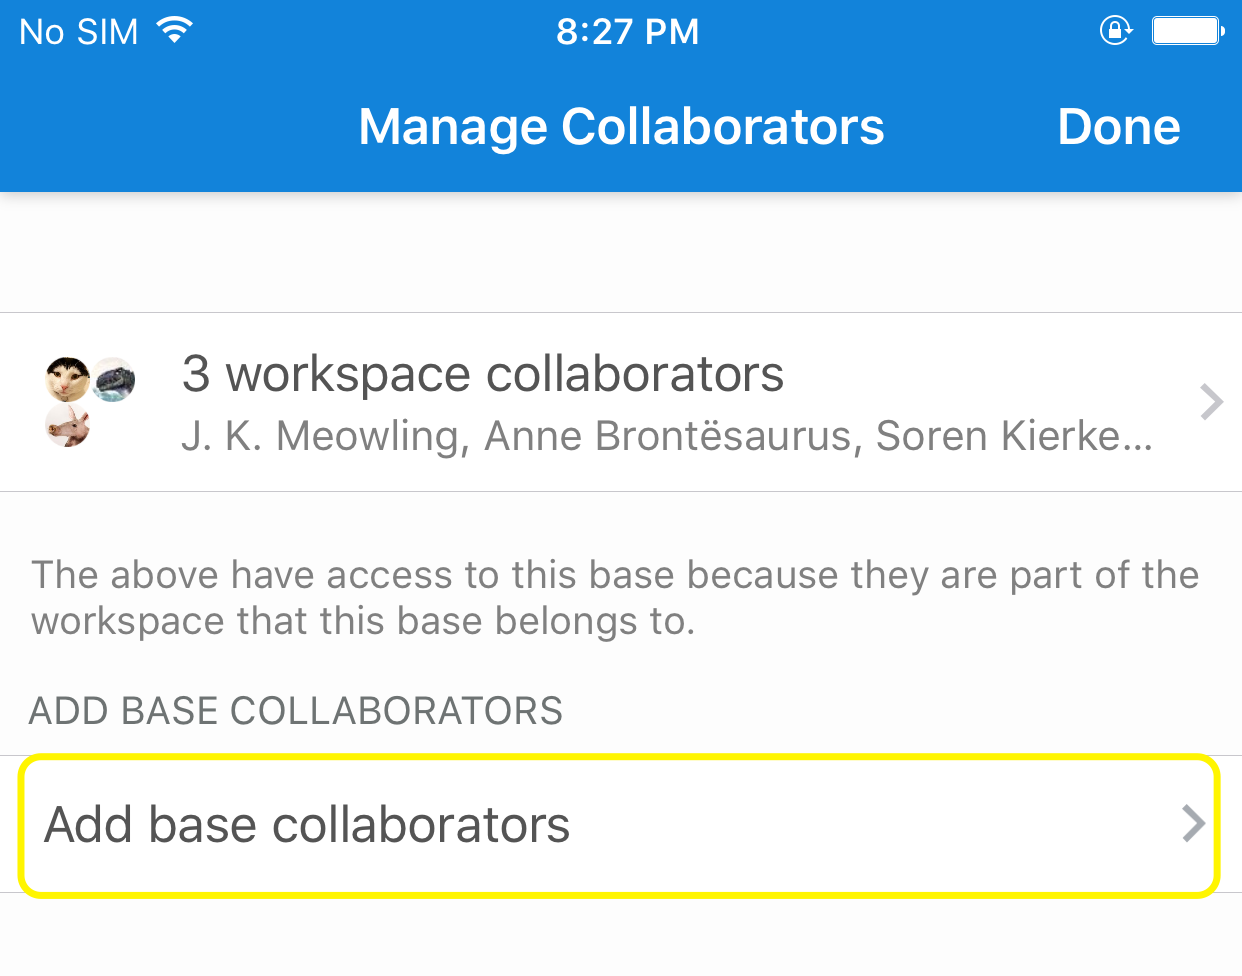 07-add-base-collaborators.png